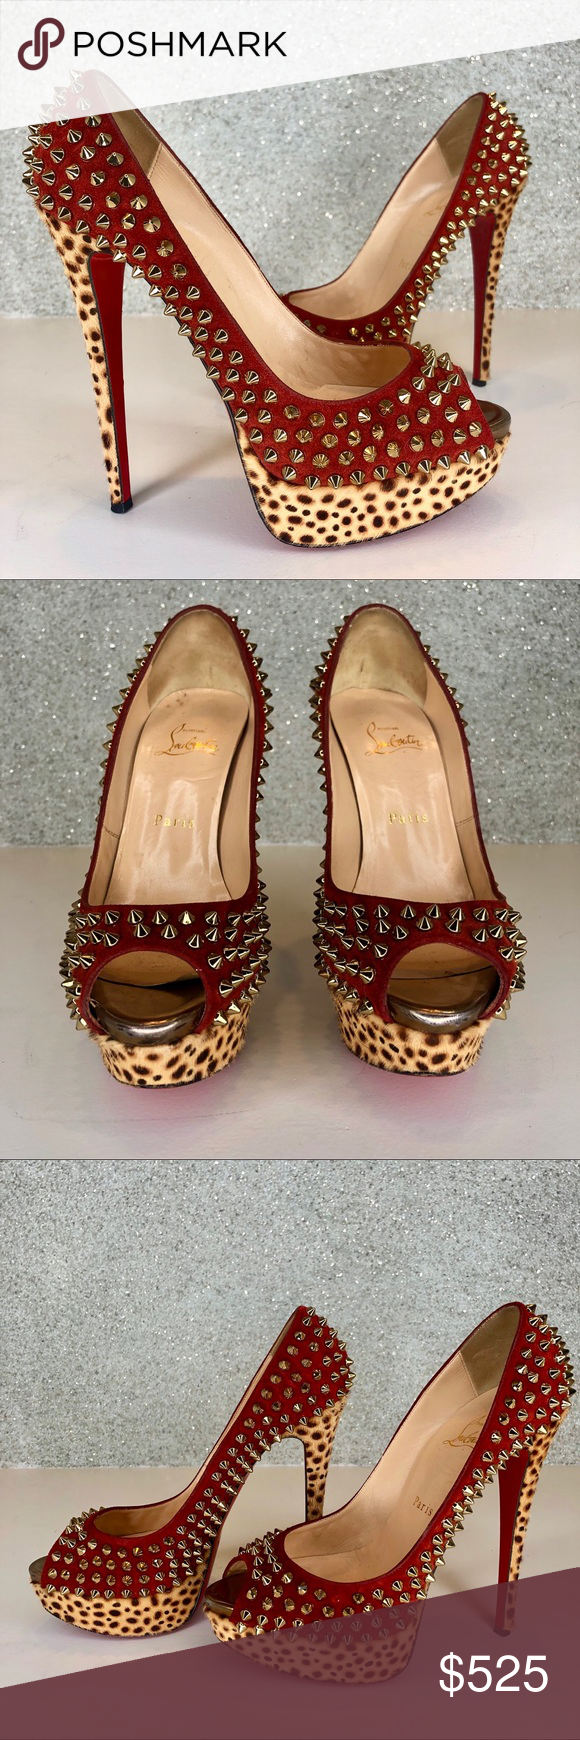 f42b0b4c0a6b Spotted while shopping on Poshmark  LOUBOUTIN Suede Leopard Pony Lady Peep  Spikes 150!